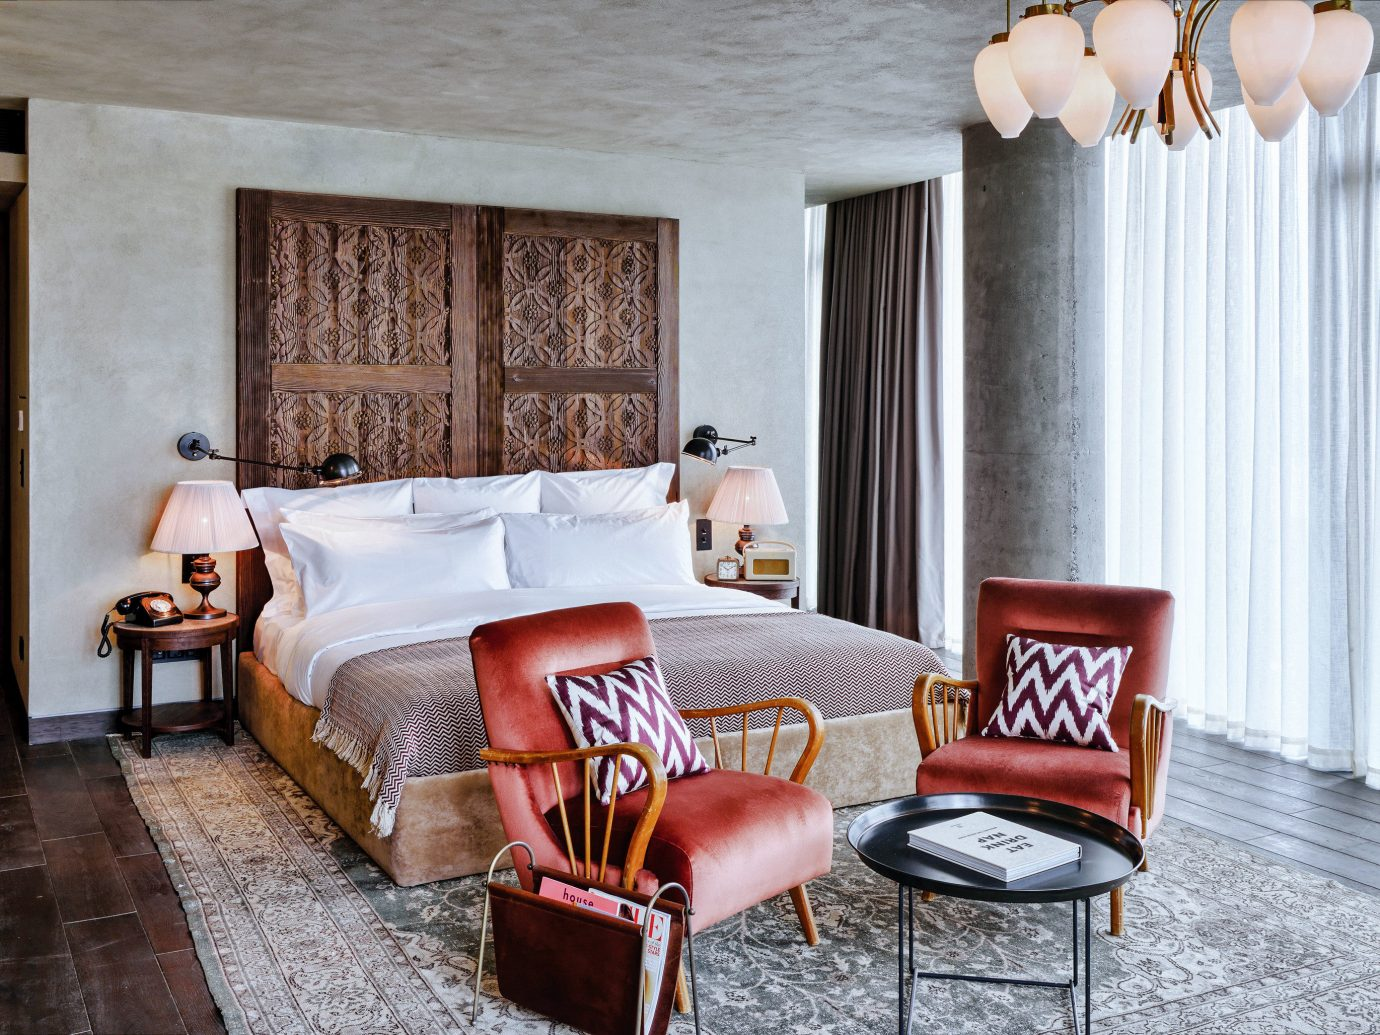 Boutique Hotels Hotels Luxury Travel floor indoor room chair interior design wall Living Suite living room furniture home ceiling Bedroom window interior designer bed frame table decorated